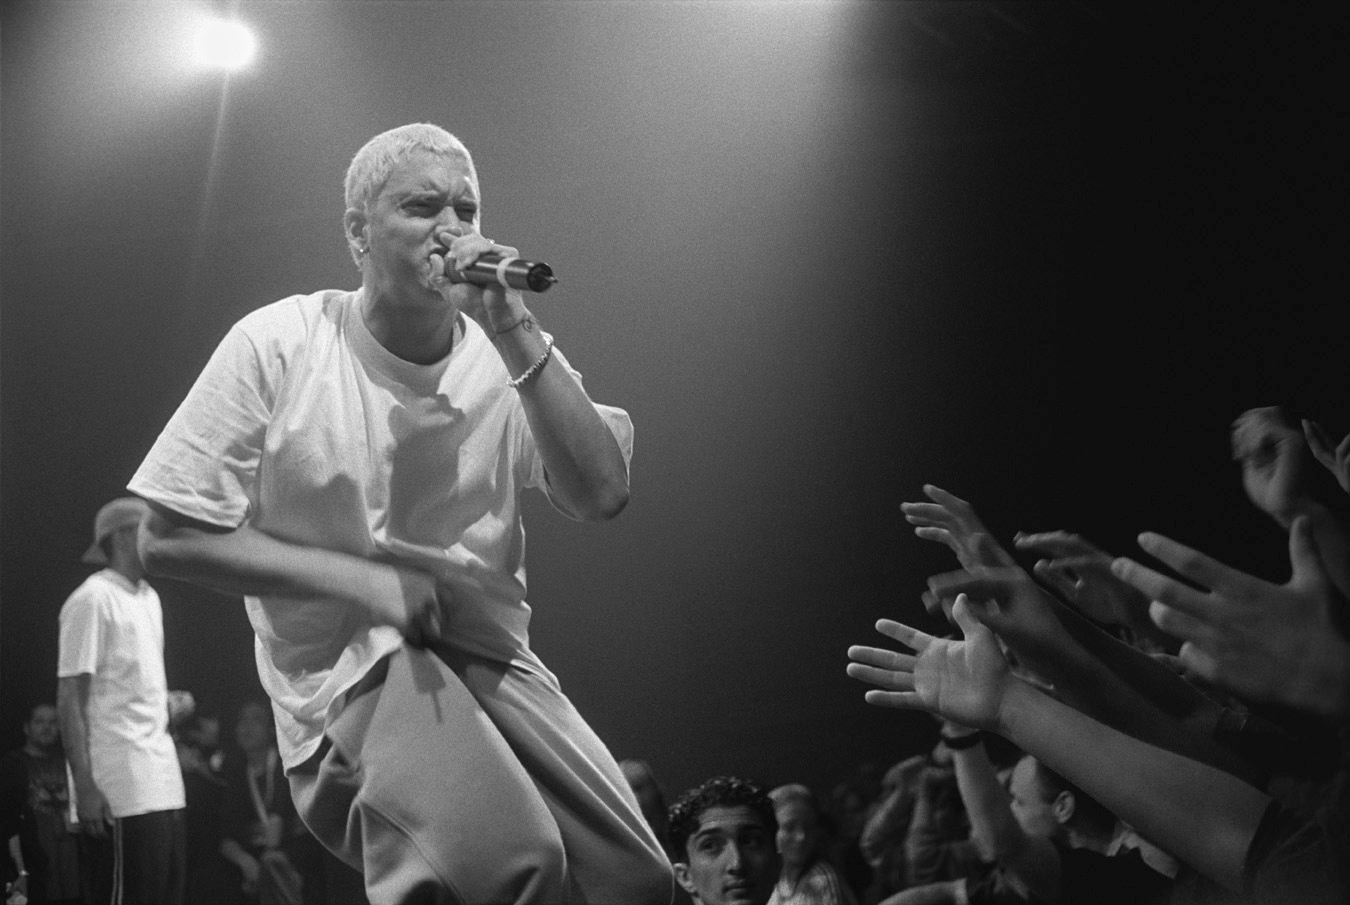 6 Interesting Facts about Eminem that you probably haven't heard of